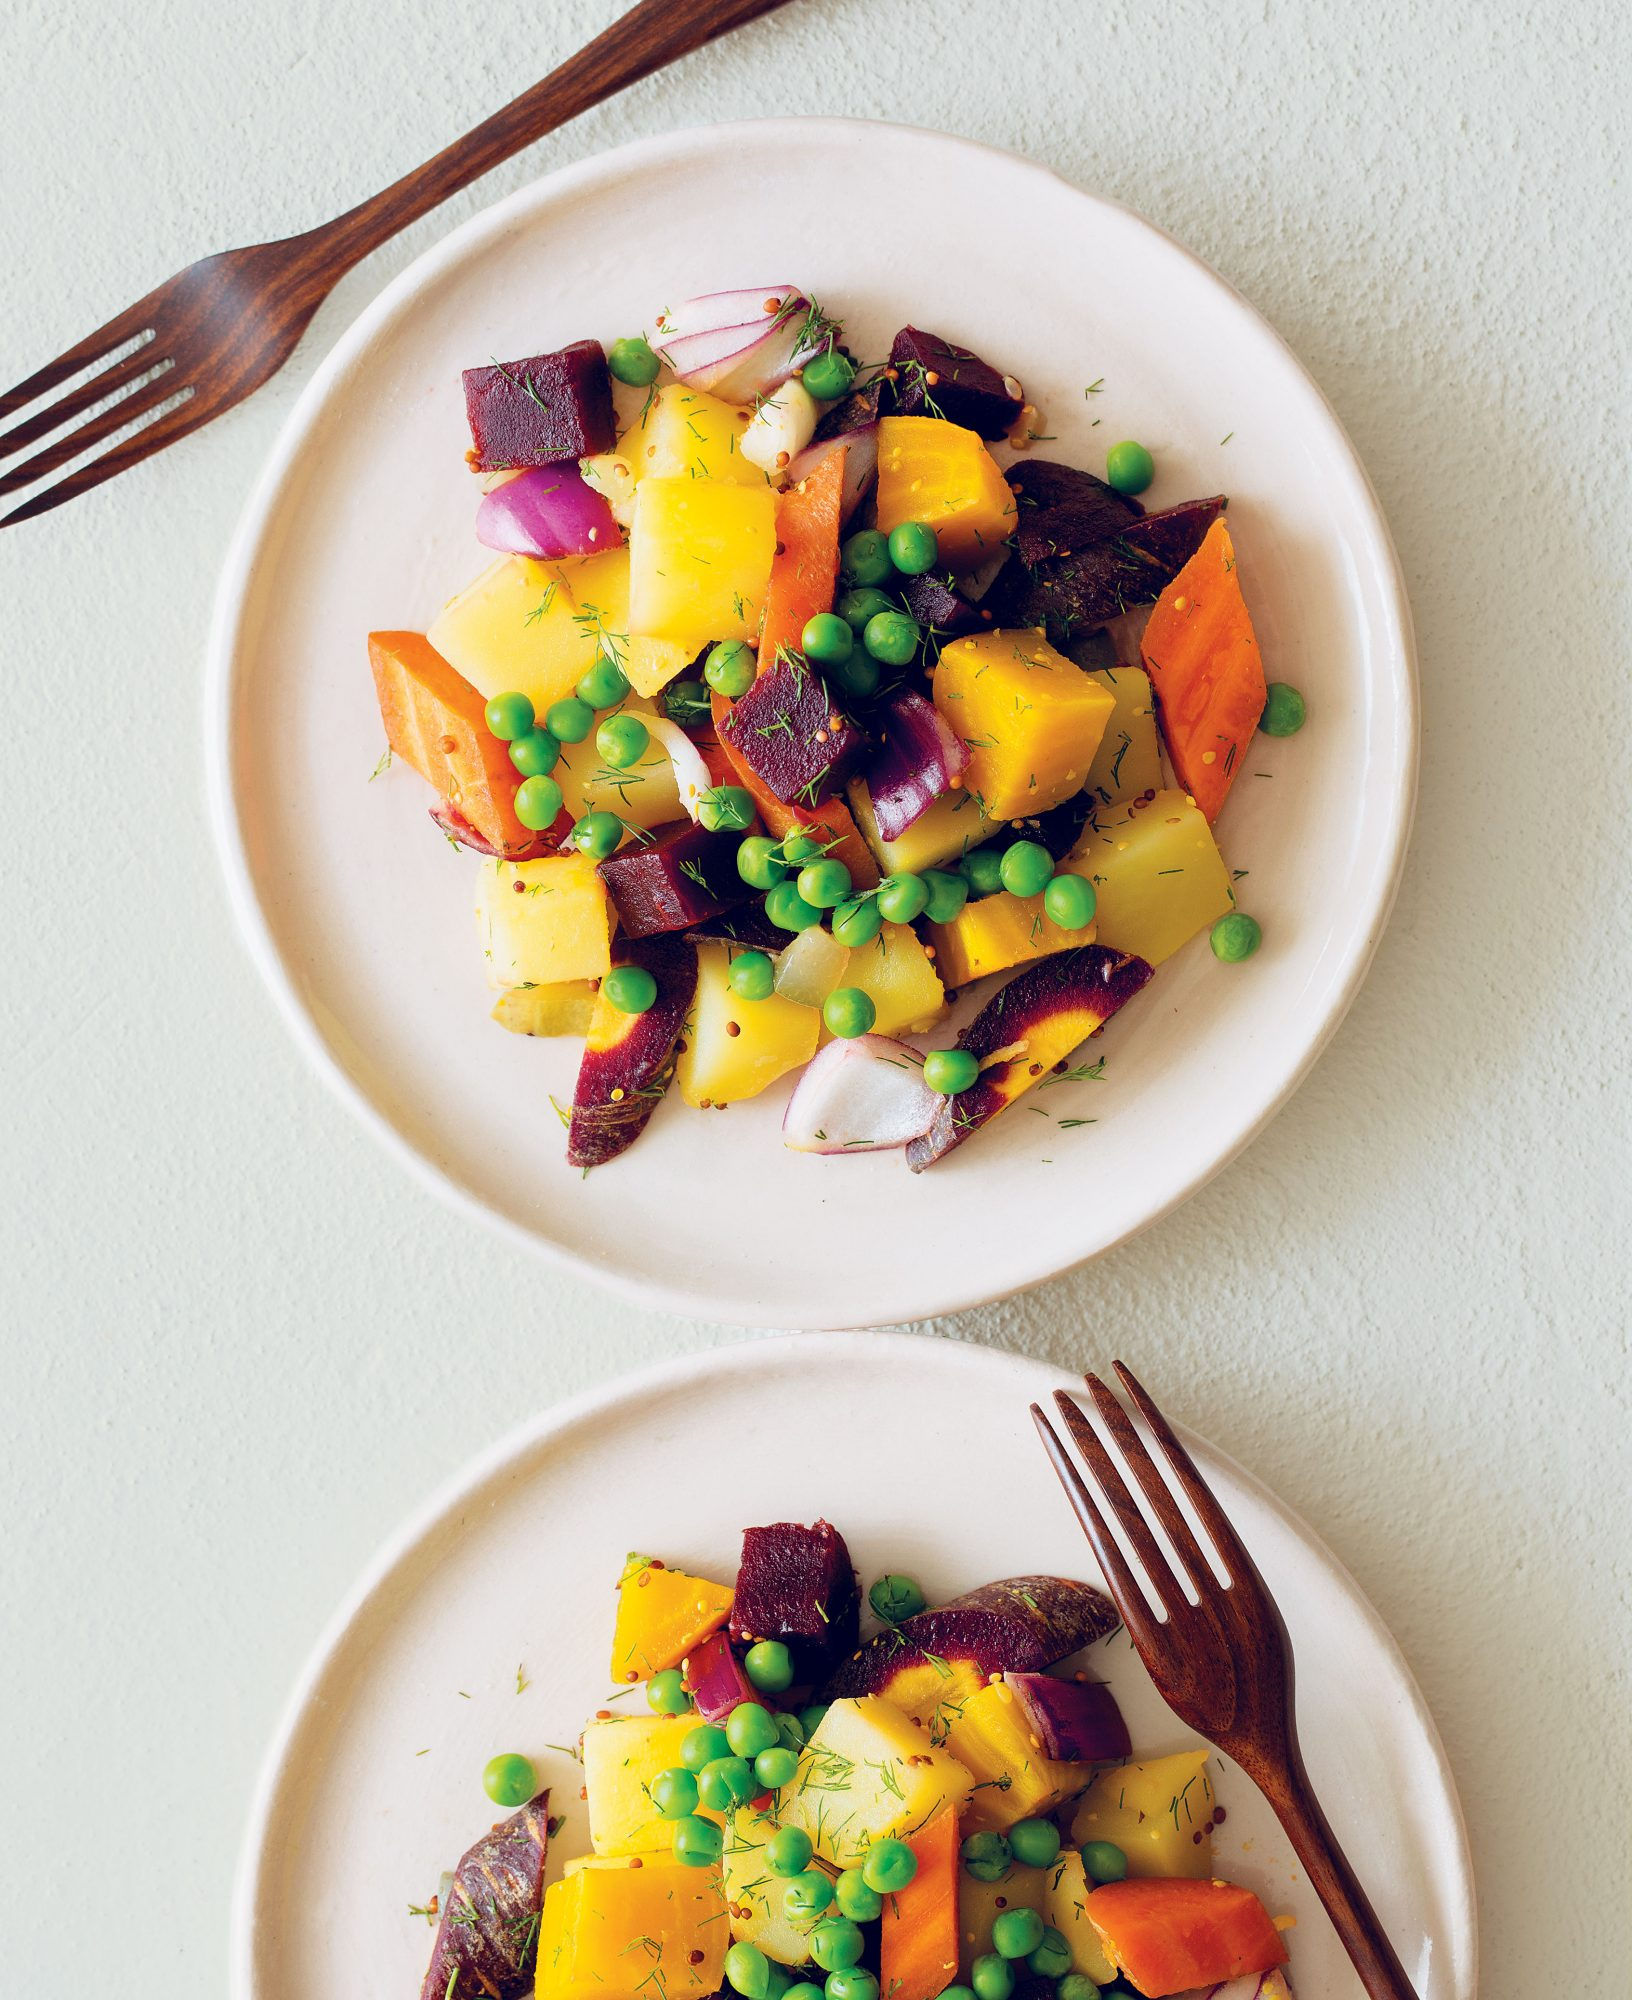 Cold Potato, Beet, Carrot and Pea Salad with Dill